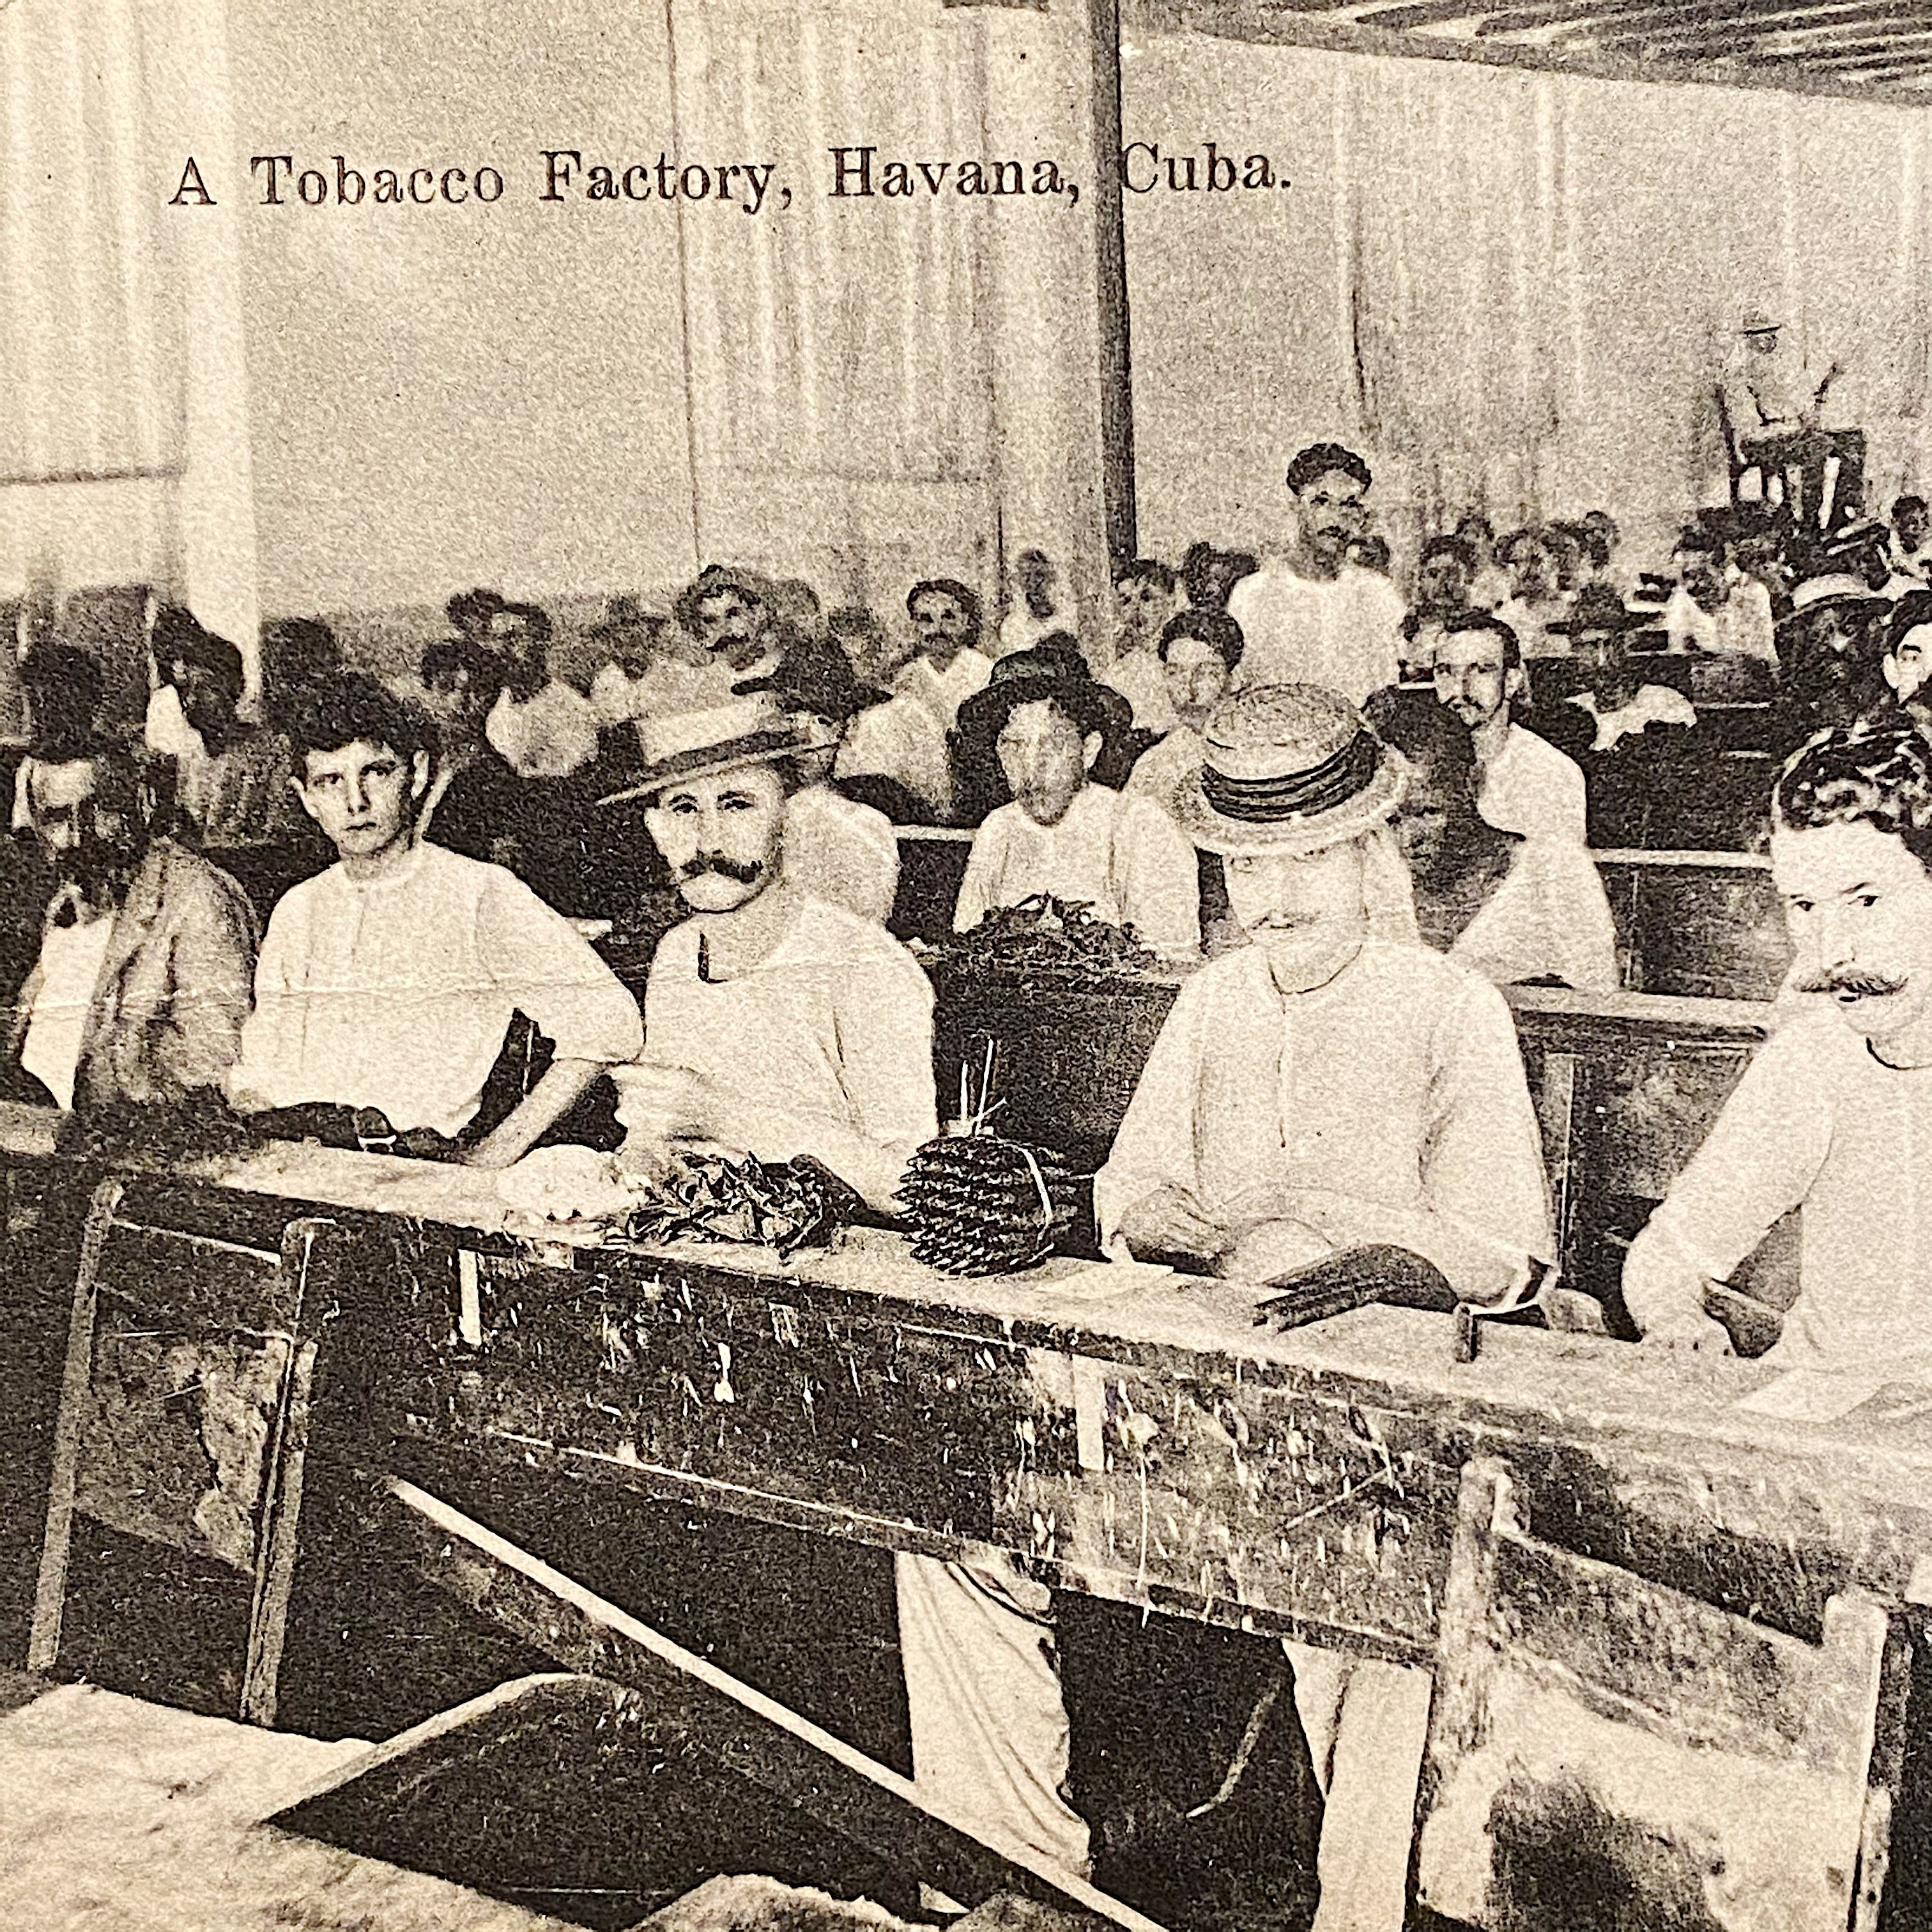 Antique RPPC of Cigar Factory - Early 1900s Tobacciana Postcards - Foreign Country Color Postcard - Rare Photography from Early 1900s